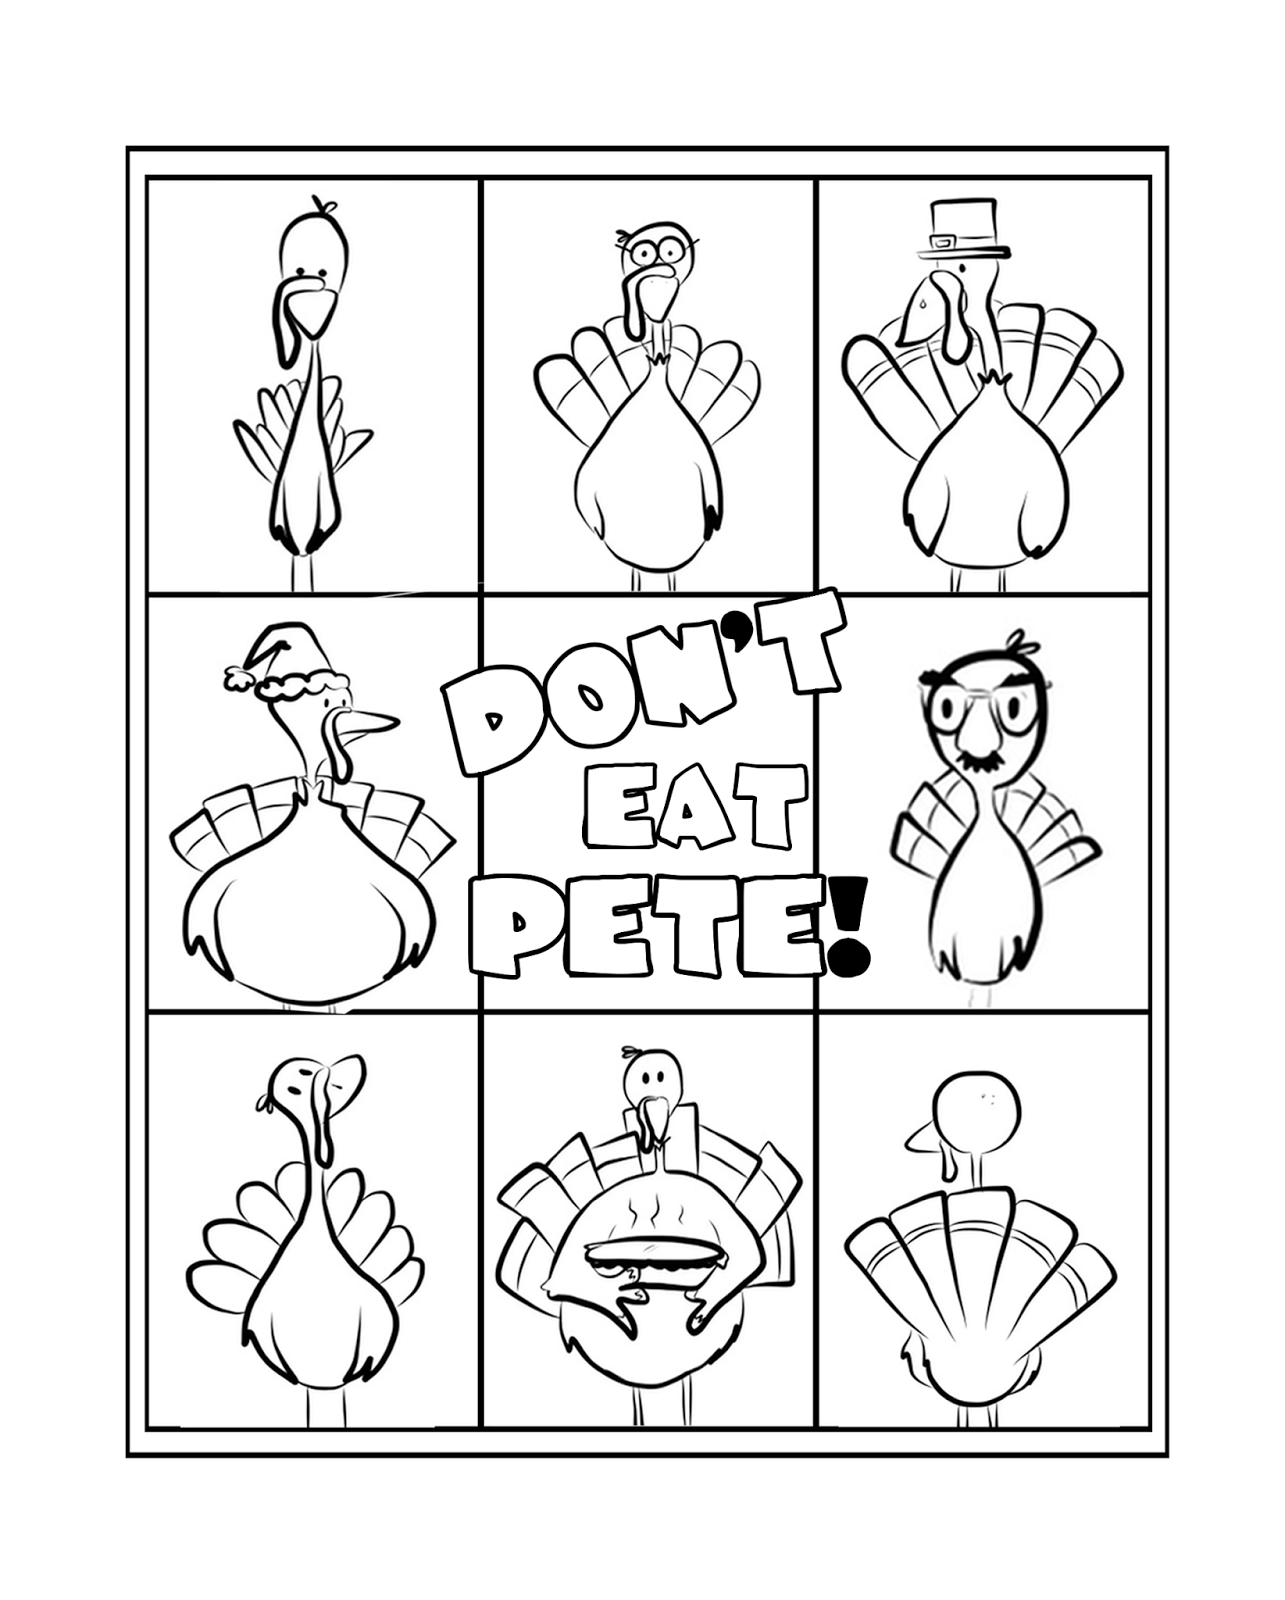 photograph relating to Don't Eat Pete Printable named Dont Try to eat Pete!